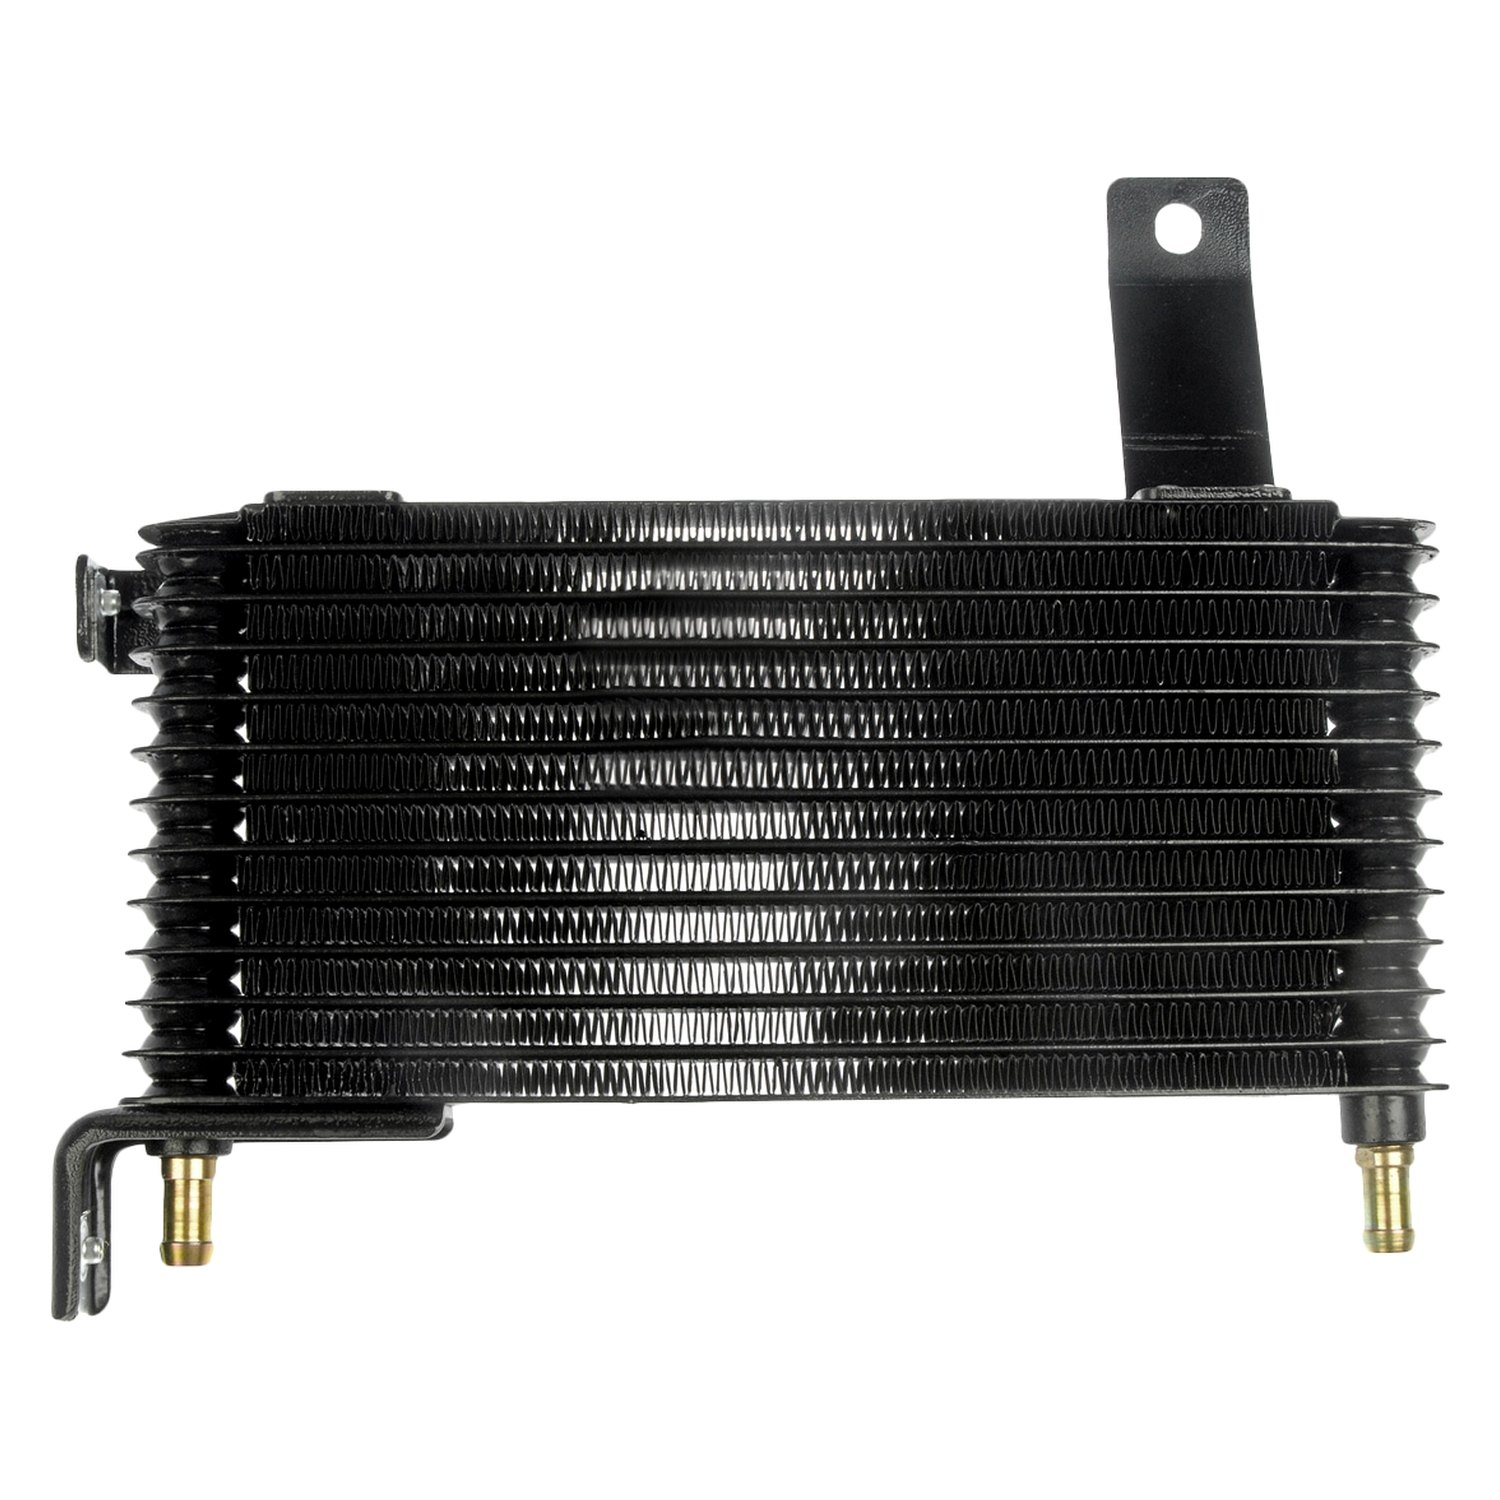 Transmission Fluid Cooler : Dorman ford e series automatic transmission oil cooler